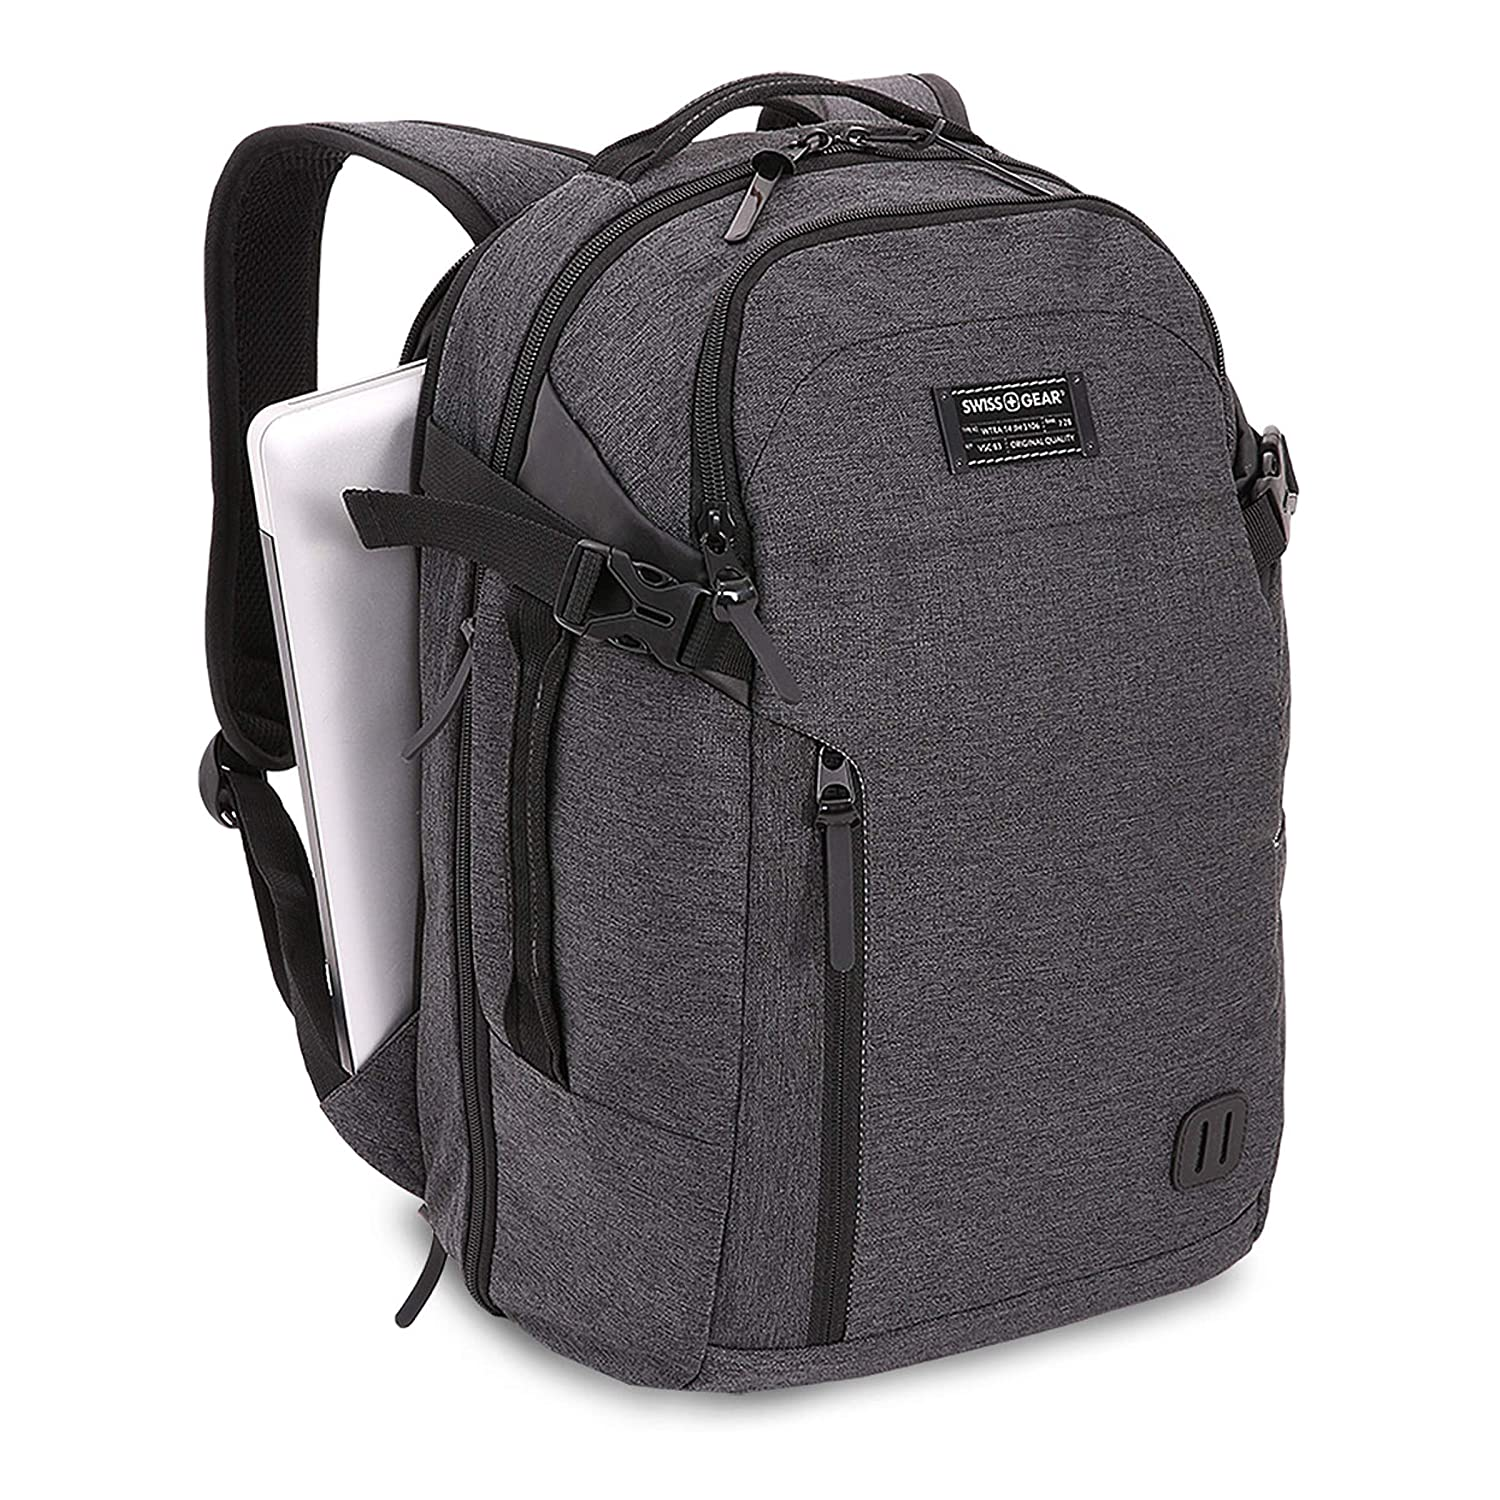 cb74bf699 Amazon.com: SWISSGEAR Getaway Weekend 15-inch Padded Laptop Backpack |  Travel, Work, School | Men's and Women's - Heather Gray: Clothing